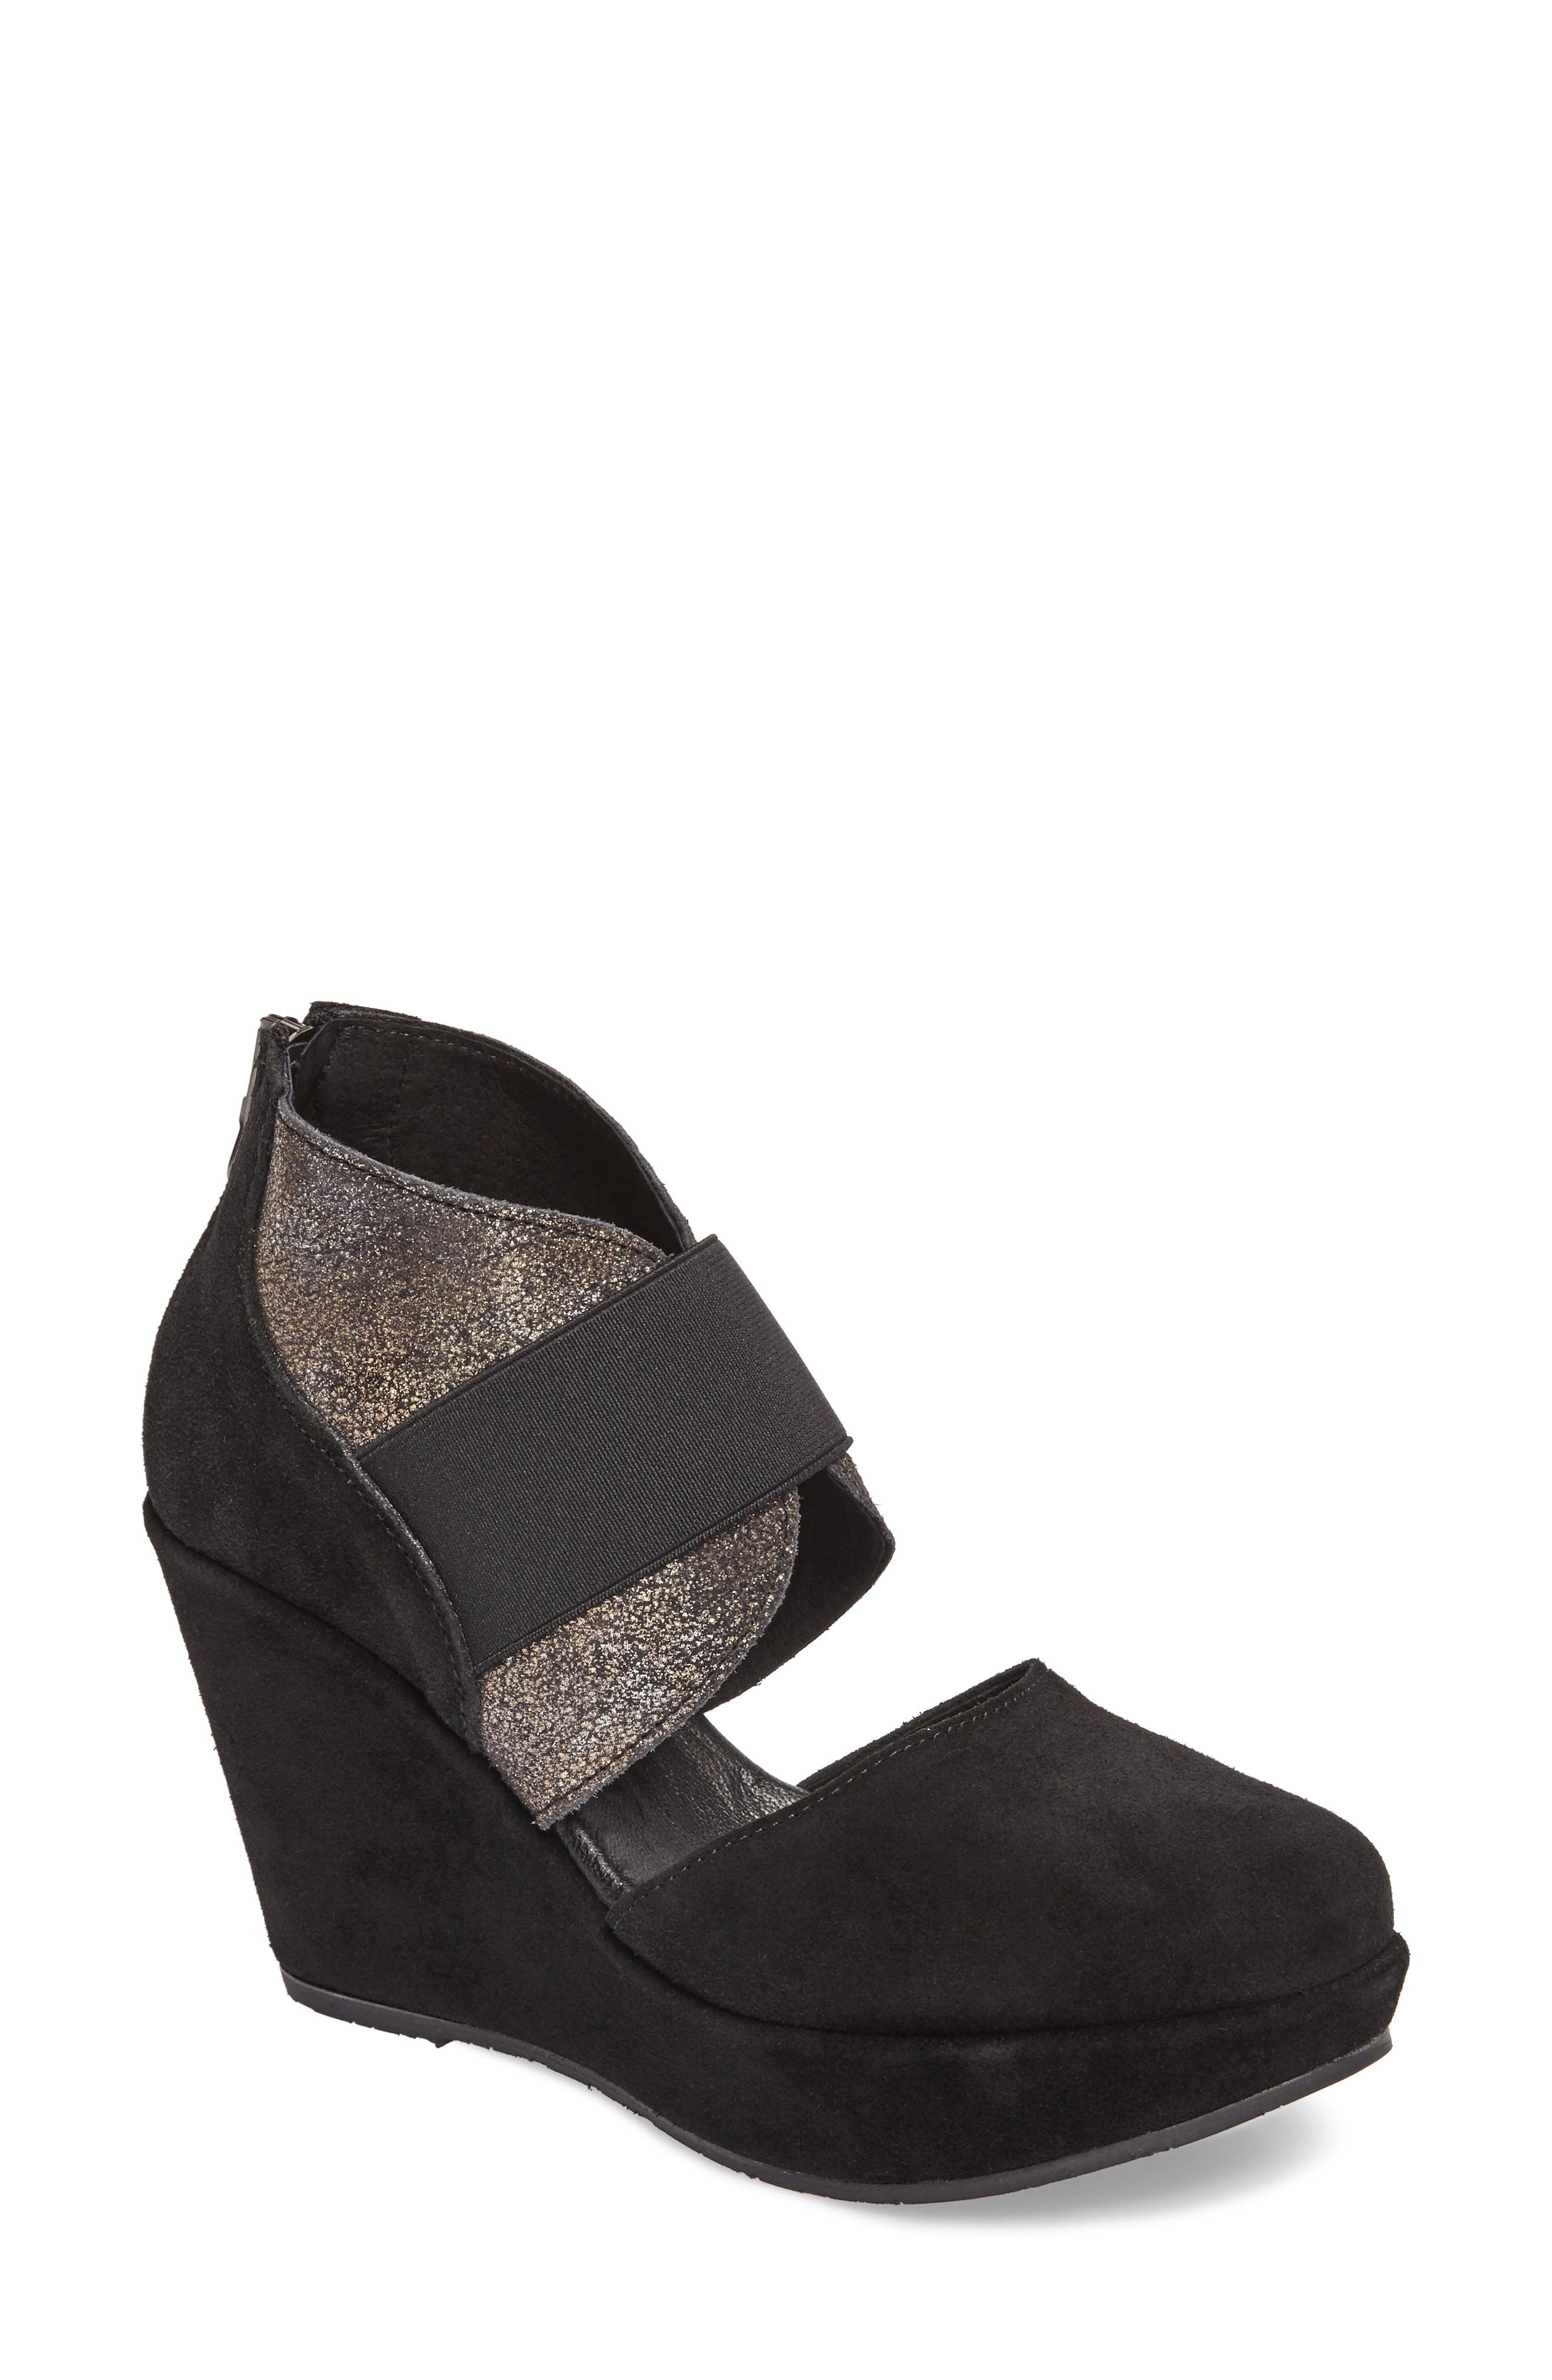 Main Image - Cordani Raine Platform Wedge (Women)